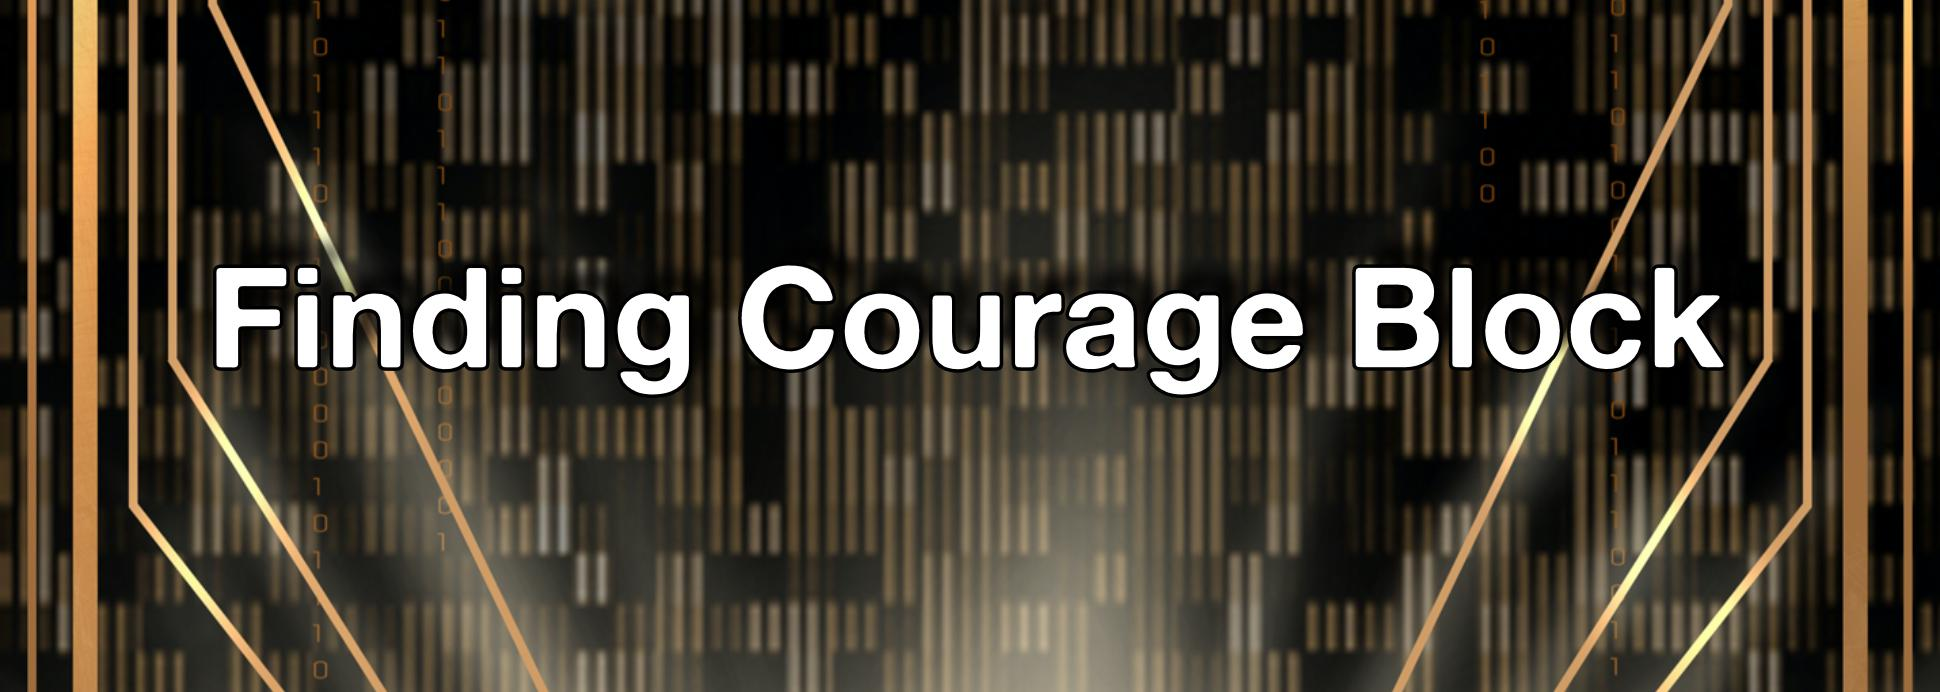 Finding Courage Block